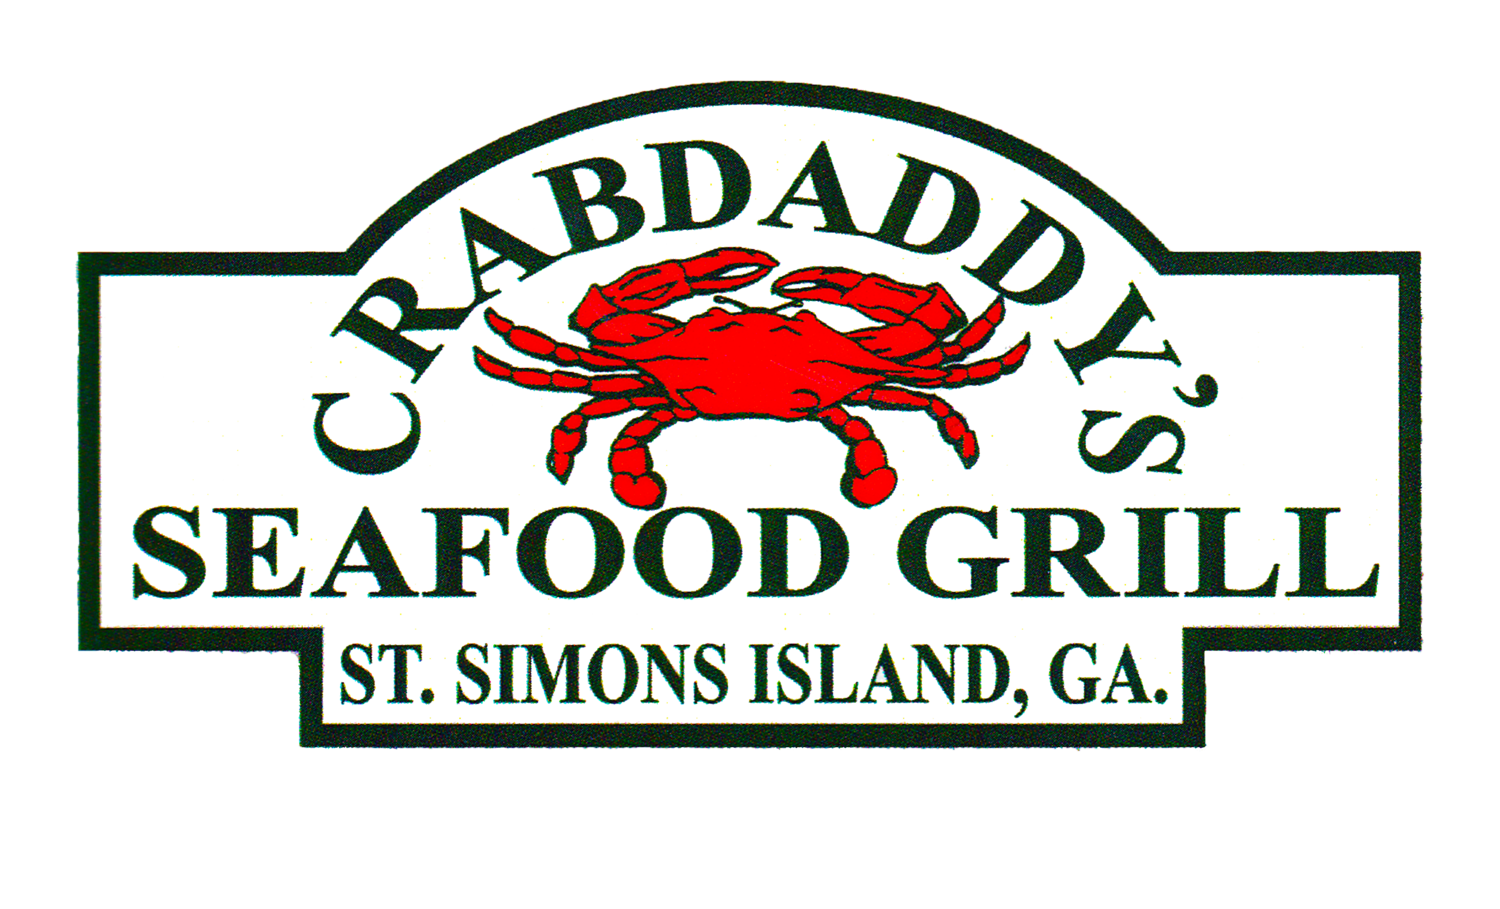 Crabdaddy S Seafood Grill Grilled Seafood Seafood Grilling